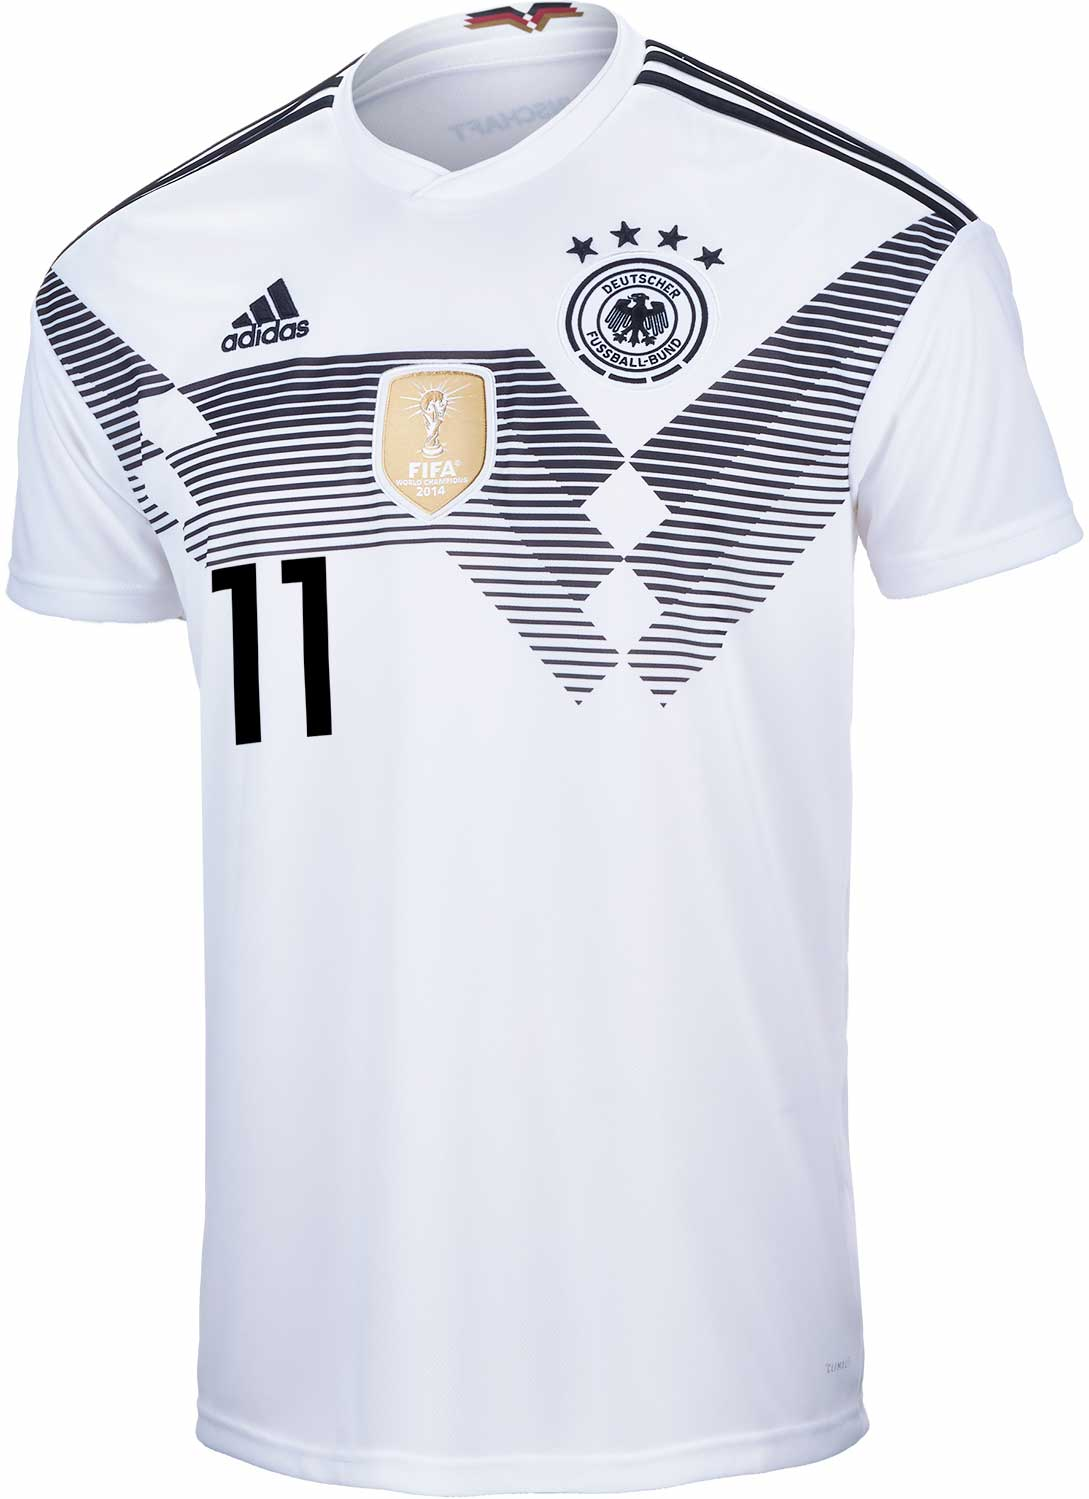 new arrival 6f98d 41aee adidas Marco Reus Germany Home Jersey 2018-19 - SoccerPro